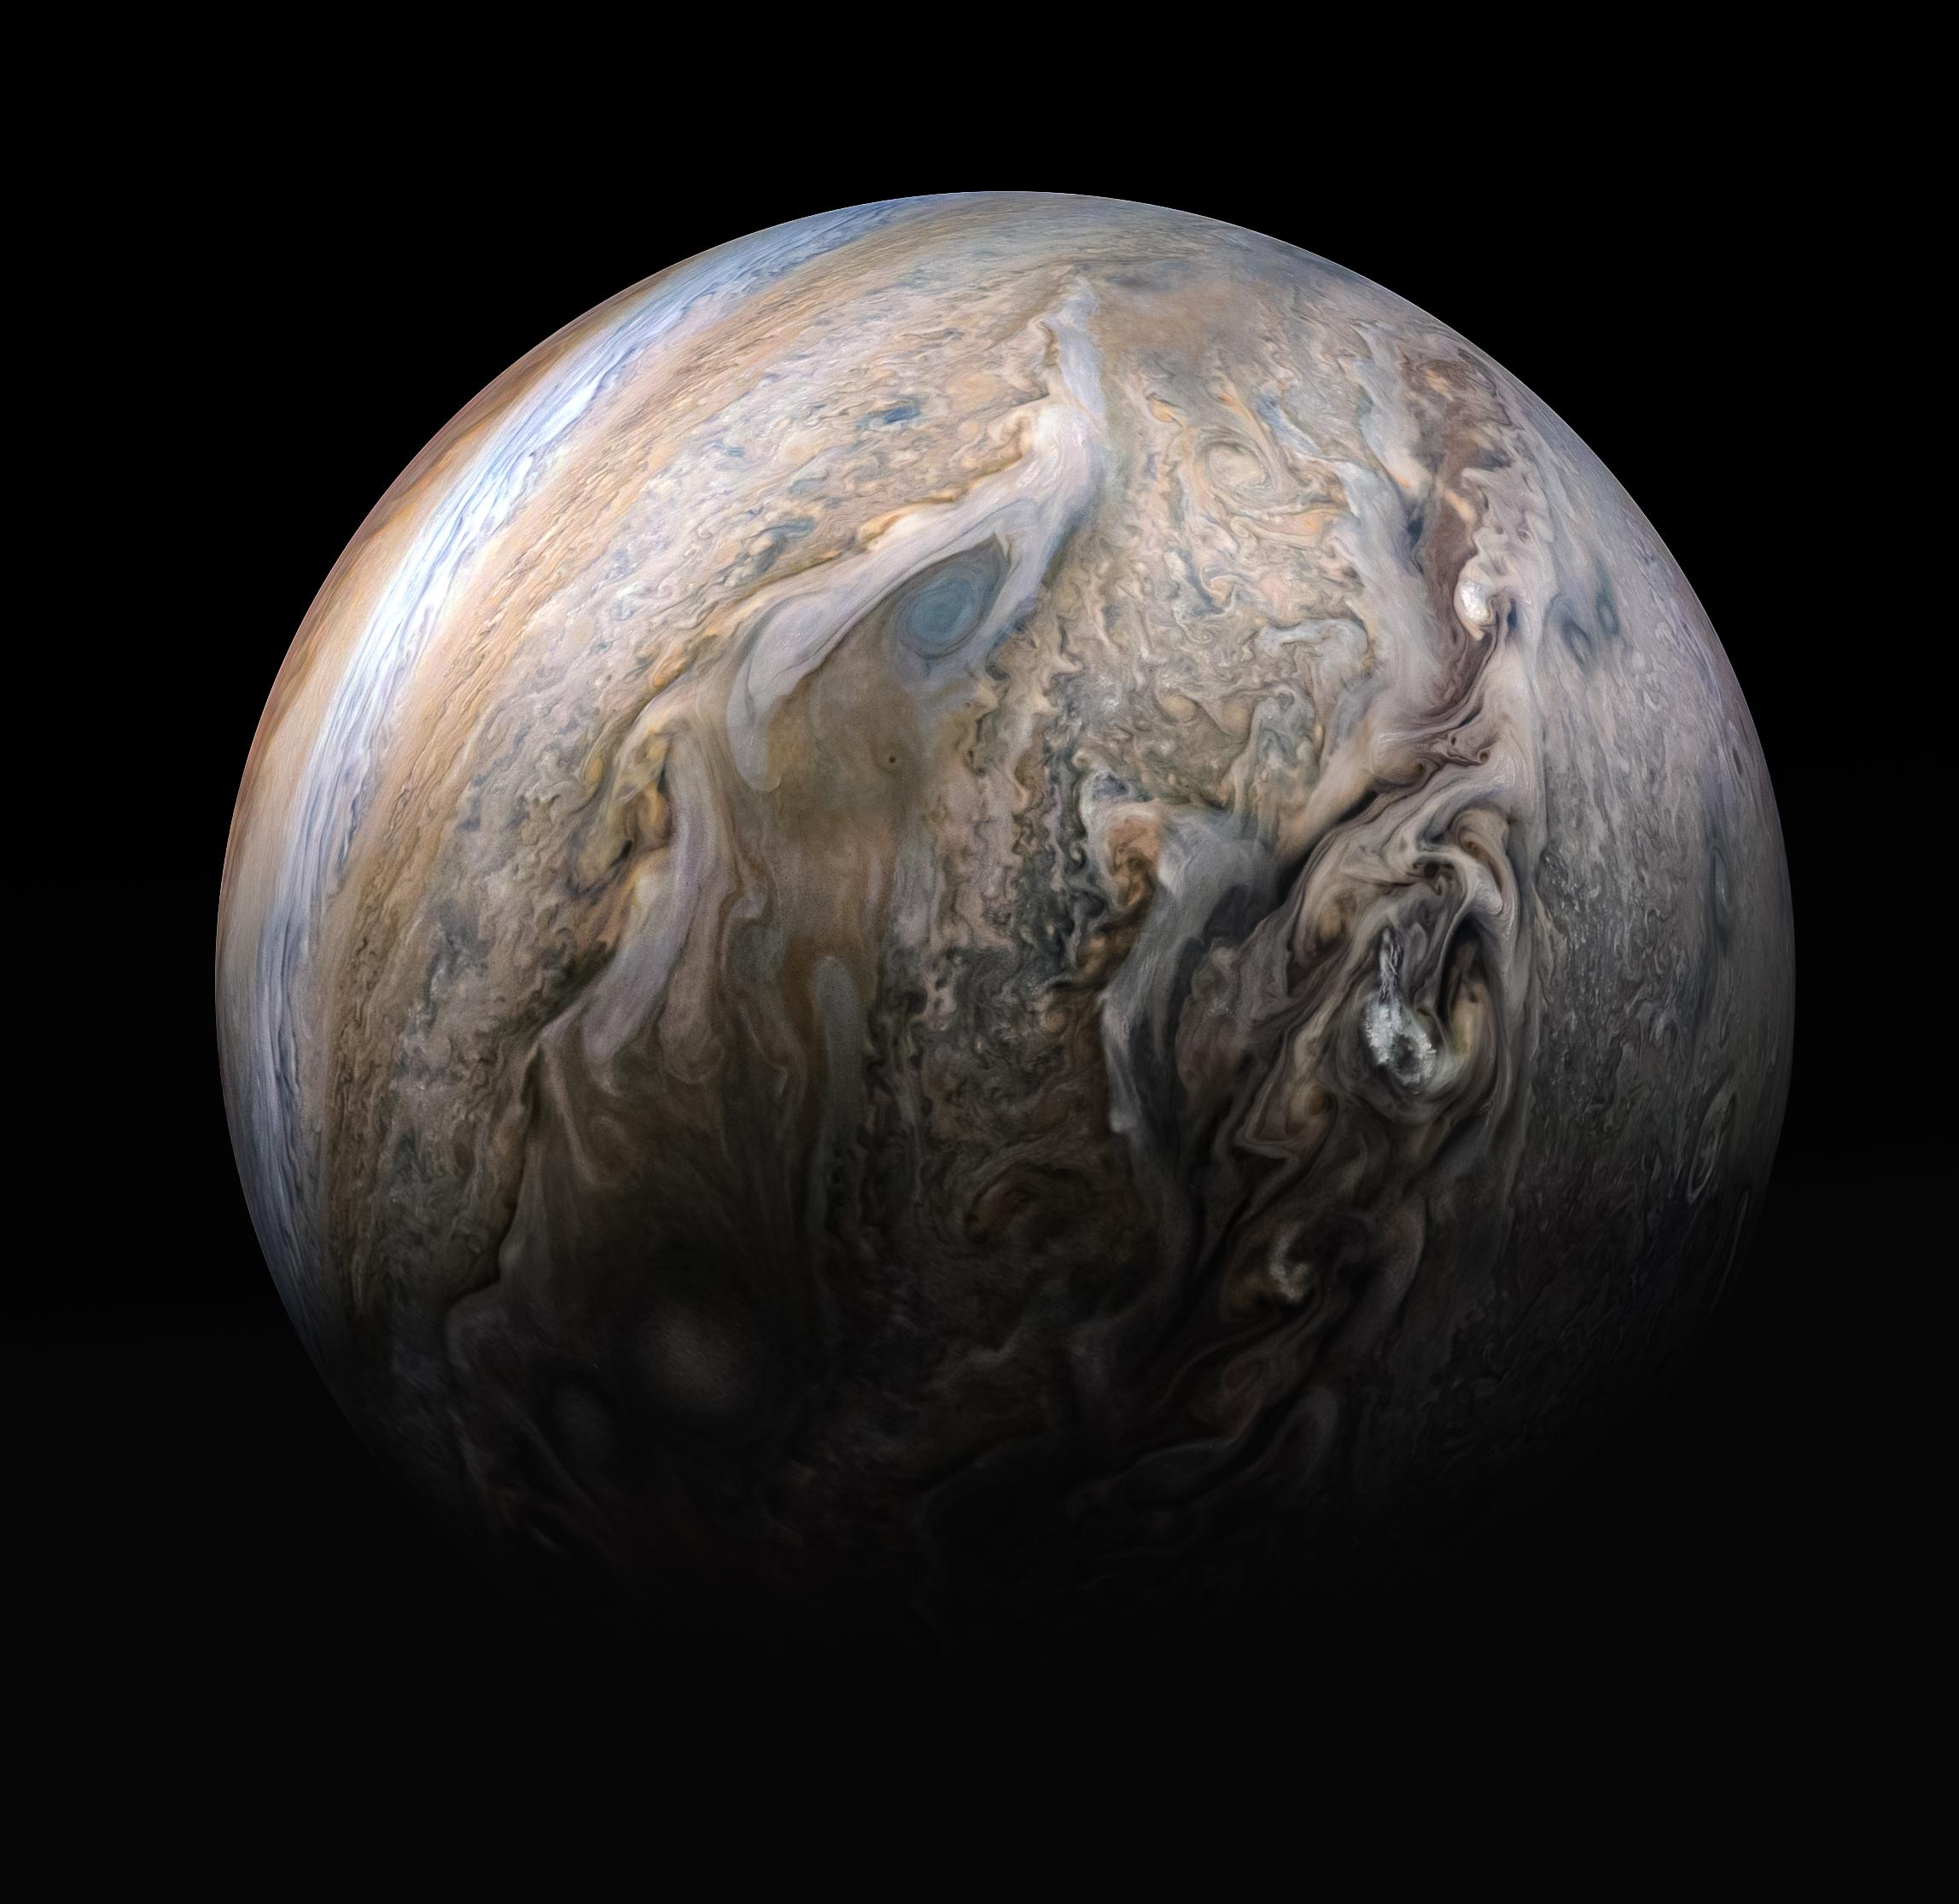 This stunning compilation image of Jupiter's stormy northern hemisphere was captured by NASA's Juno spacecraft as it performed a close pass of the gas giant planet. Some bright-white clouds can be seen popping up to high altitudes on the right side of Jupiter's disk. NASA/JPL-Caltech/SwRI/MSSS/Kevin M. Gill